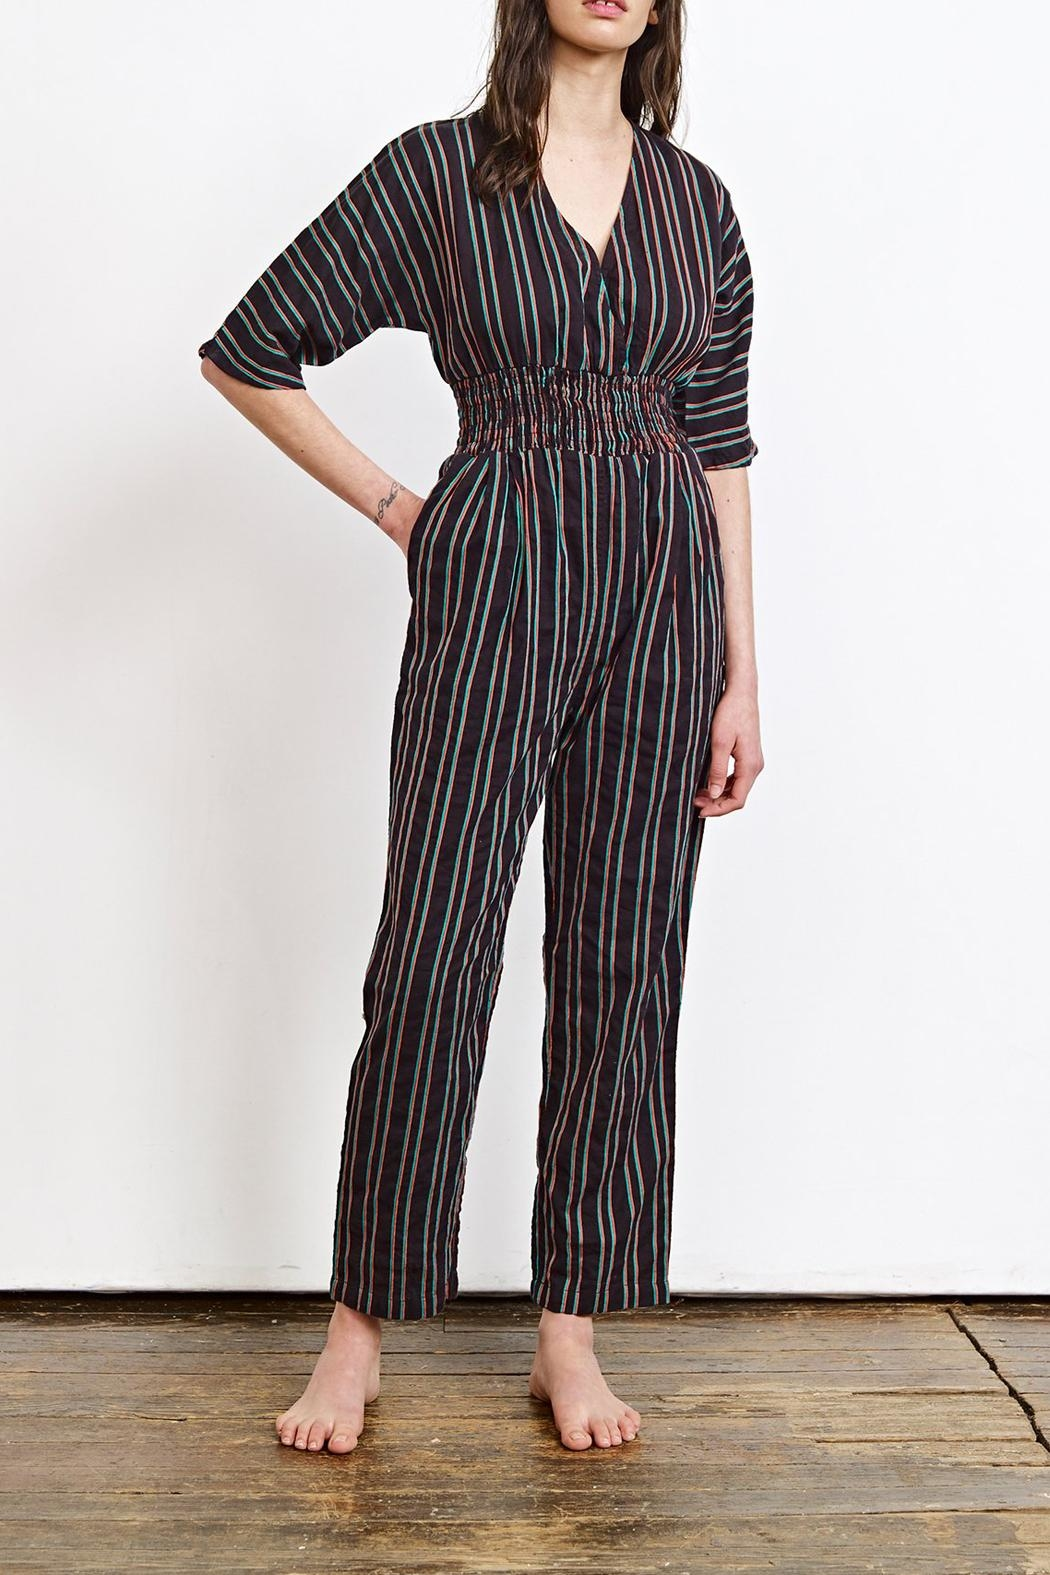 Ace & Jig Bianca Skydive Jumpsuit - Front Cropped Image